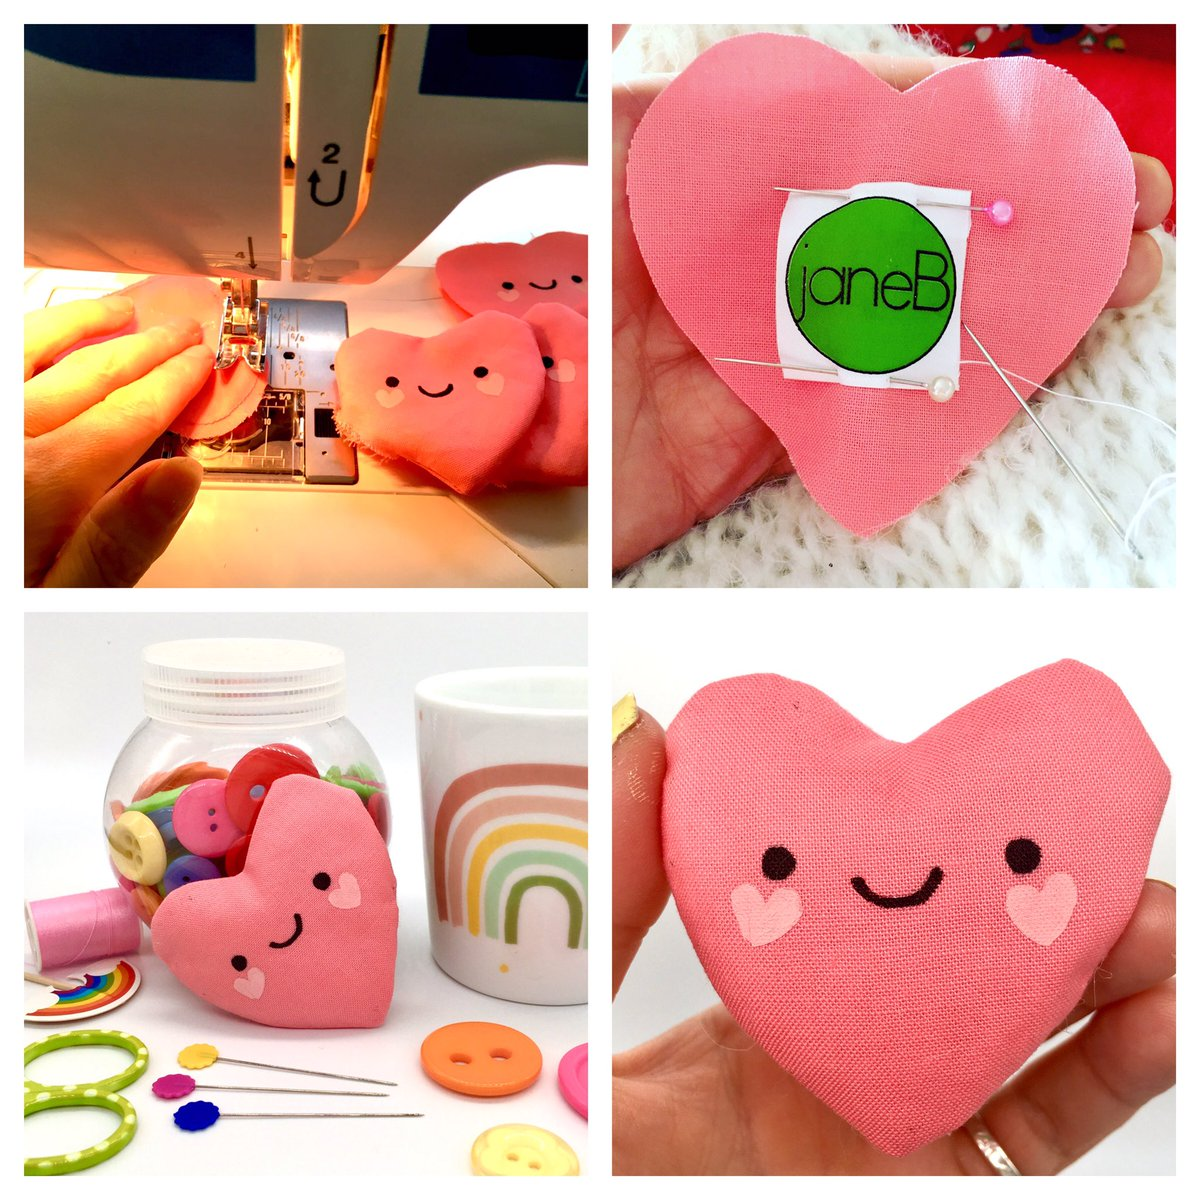 Morning #elevenseshour ! I found out that my little smiling fabric hearts have been featured in Etsy's Valentine homepage! I've just finished printing and sewing a new batch! 💖  #tuesdayvibe #ValentinesDay #giftideas #etsyuk #hearts #handmade